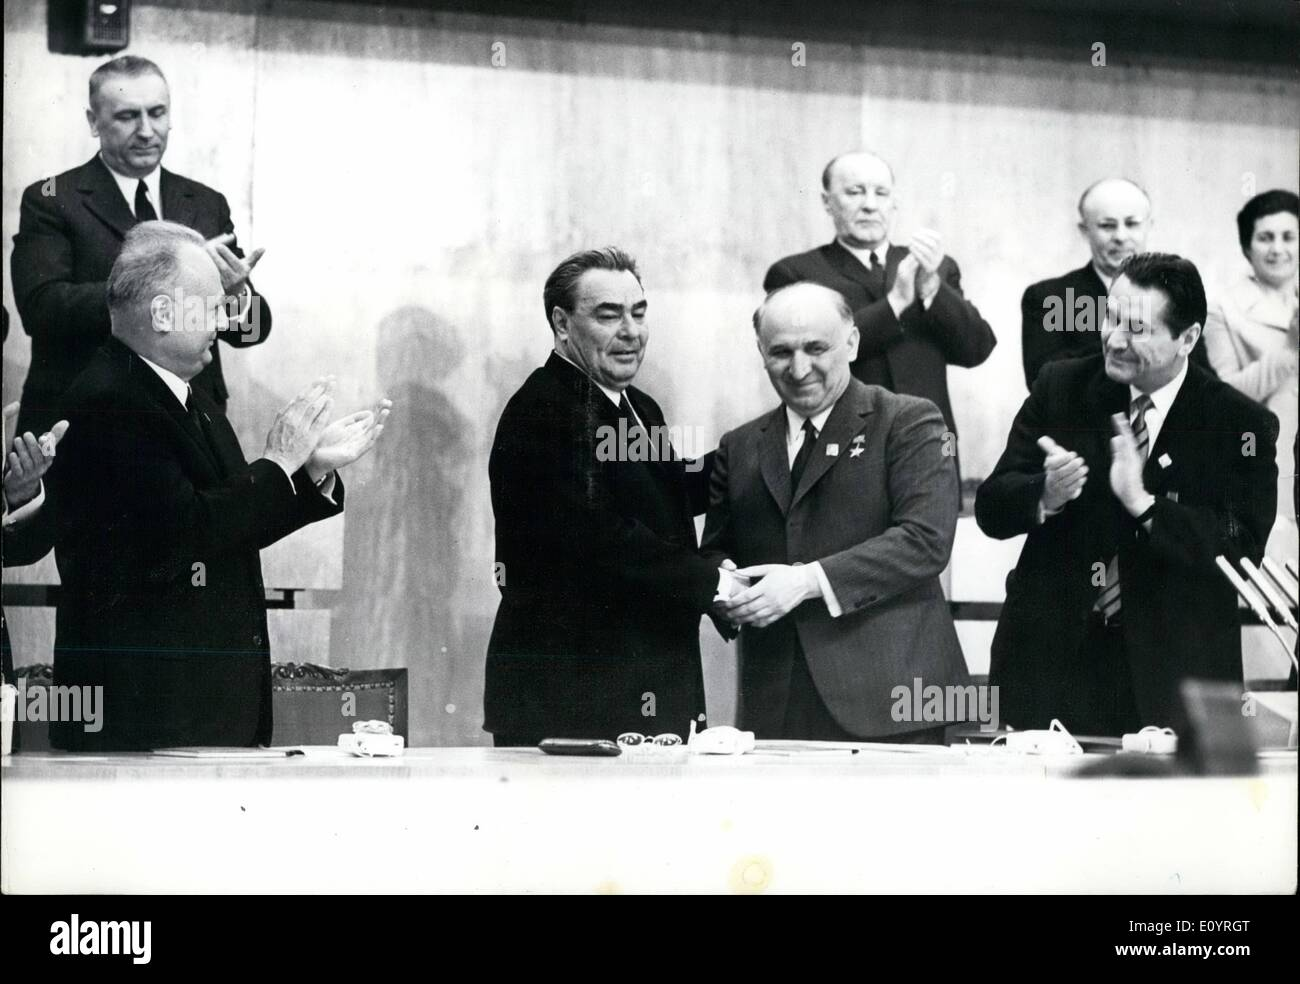 Apr. 04, 1971 - 10th Congress of the Bulgarian Communist Party: Leonid Brezhnev. Setary General of the CC of the CPSU and Tod - Stock Image